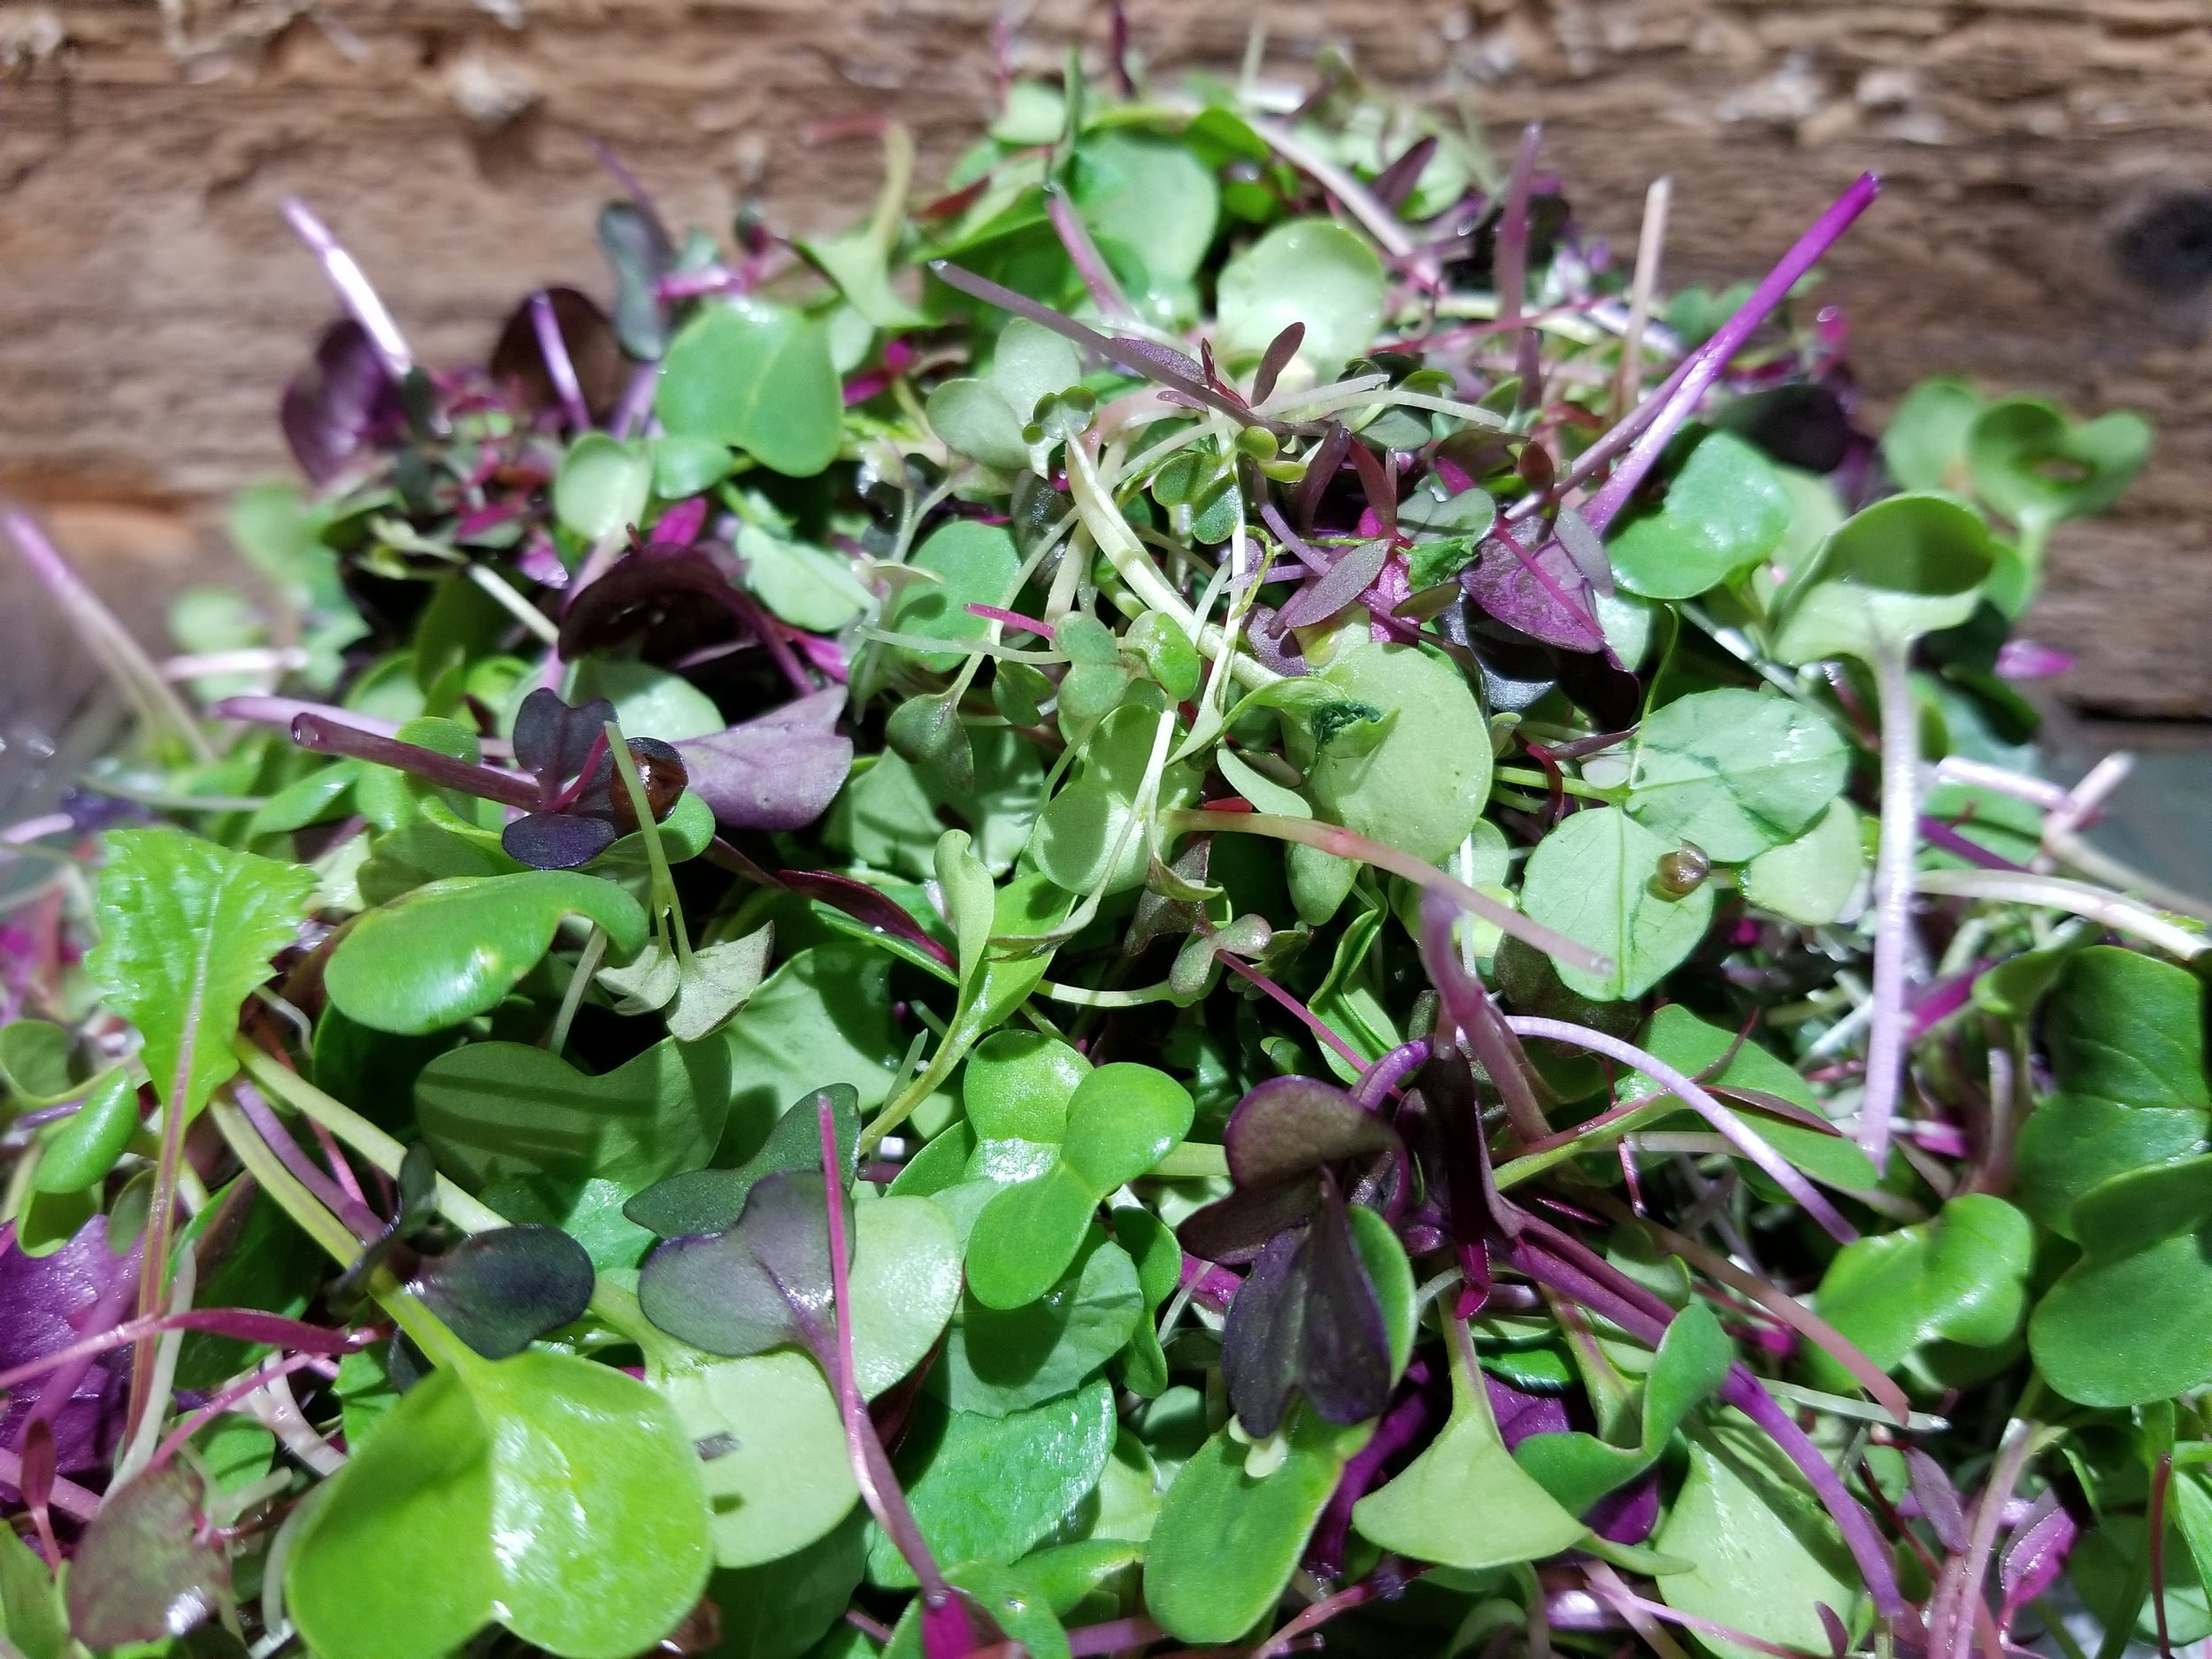 Microgreens - Rainbow Mix -broccoli, red cabbage, kale, kohlrabi, mustard, radishRadish MixCilantro - available upon request